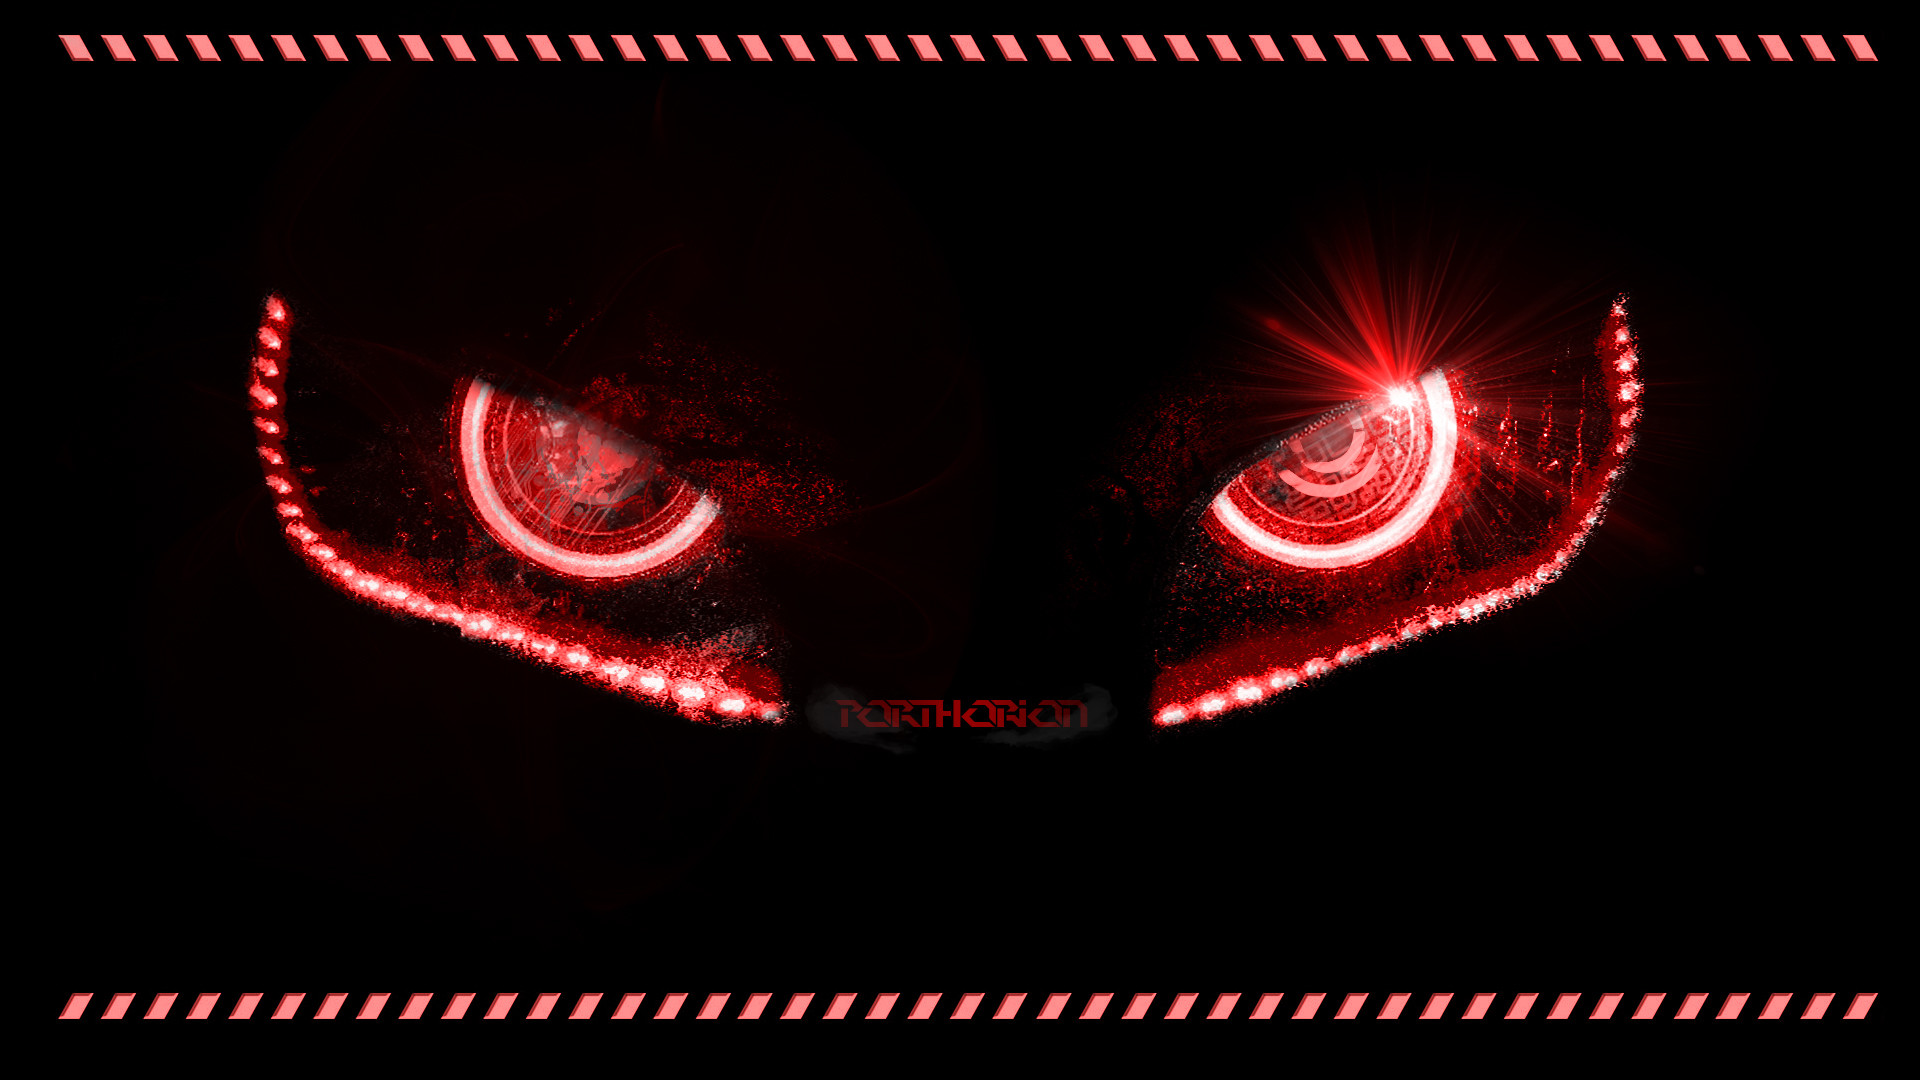 1920x1080 ... Badass Evil Robotic Eyes - With lines by porthorion